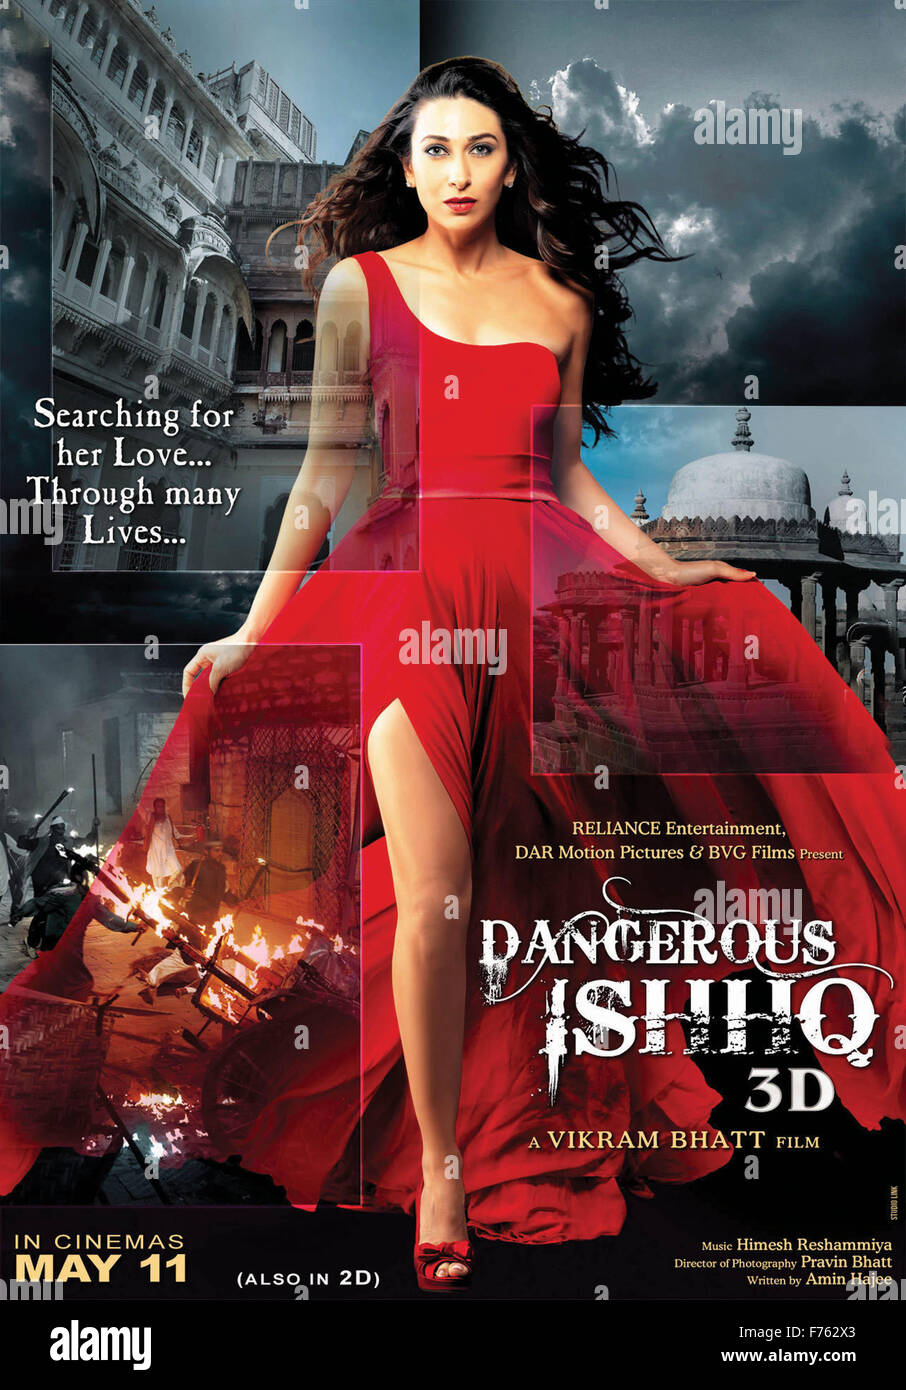 hindi film movie poster of dangerous ishq, india, asia stock photo